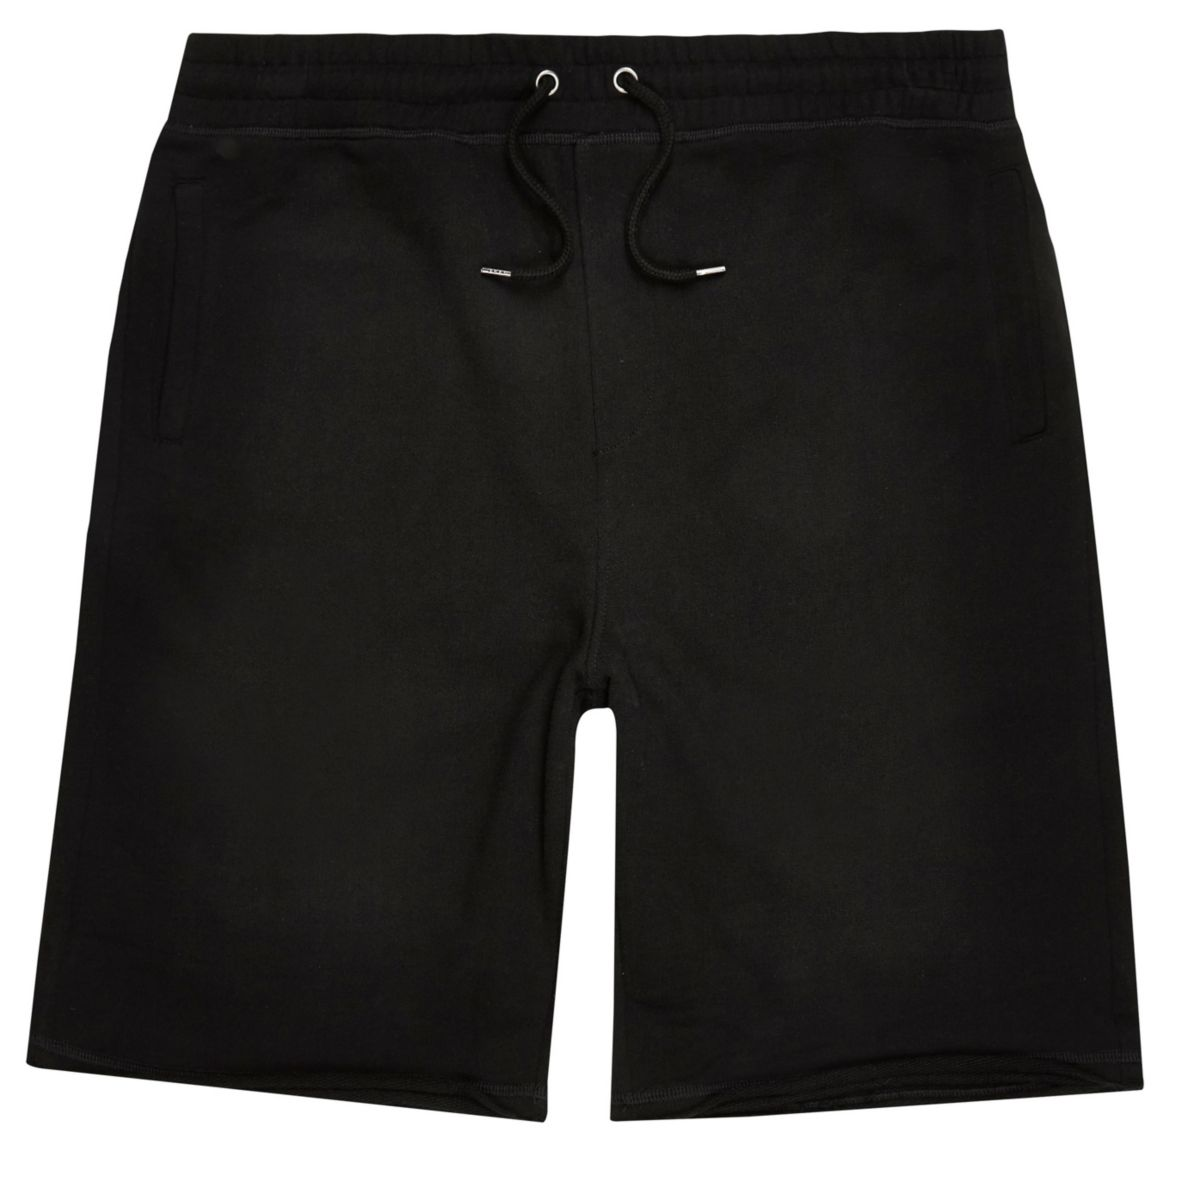 Short de jogging long noir